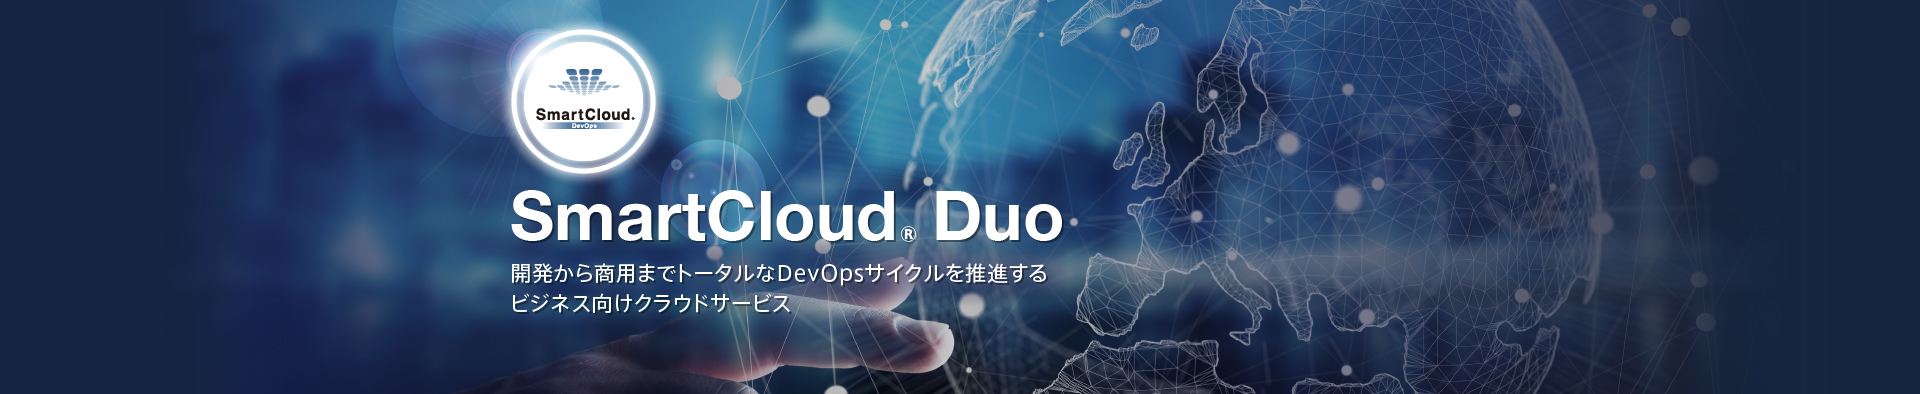 SmartCloud Duoイメージ